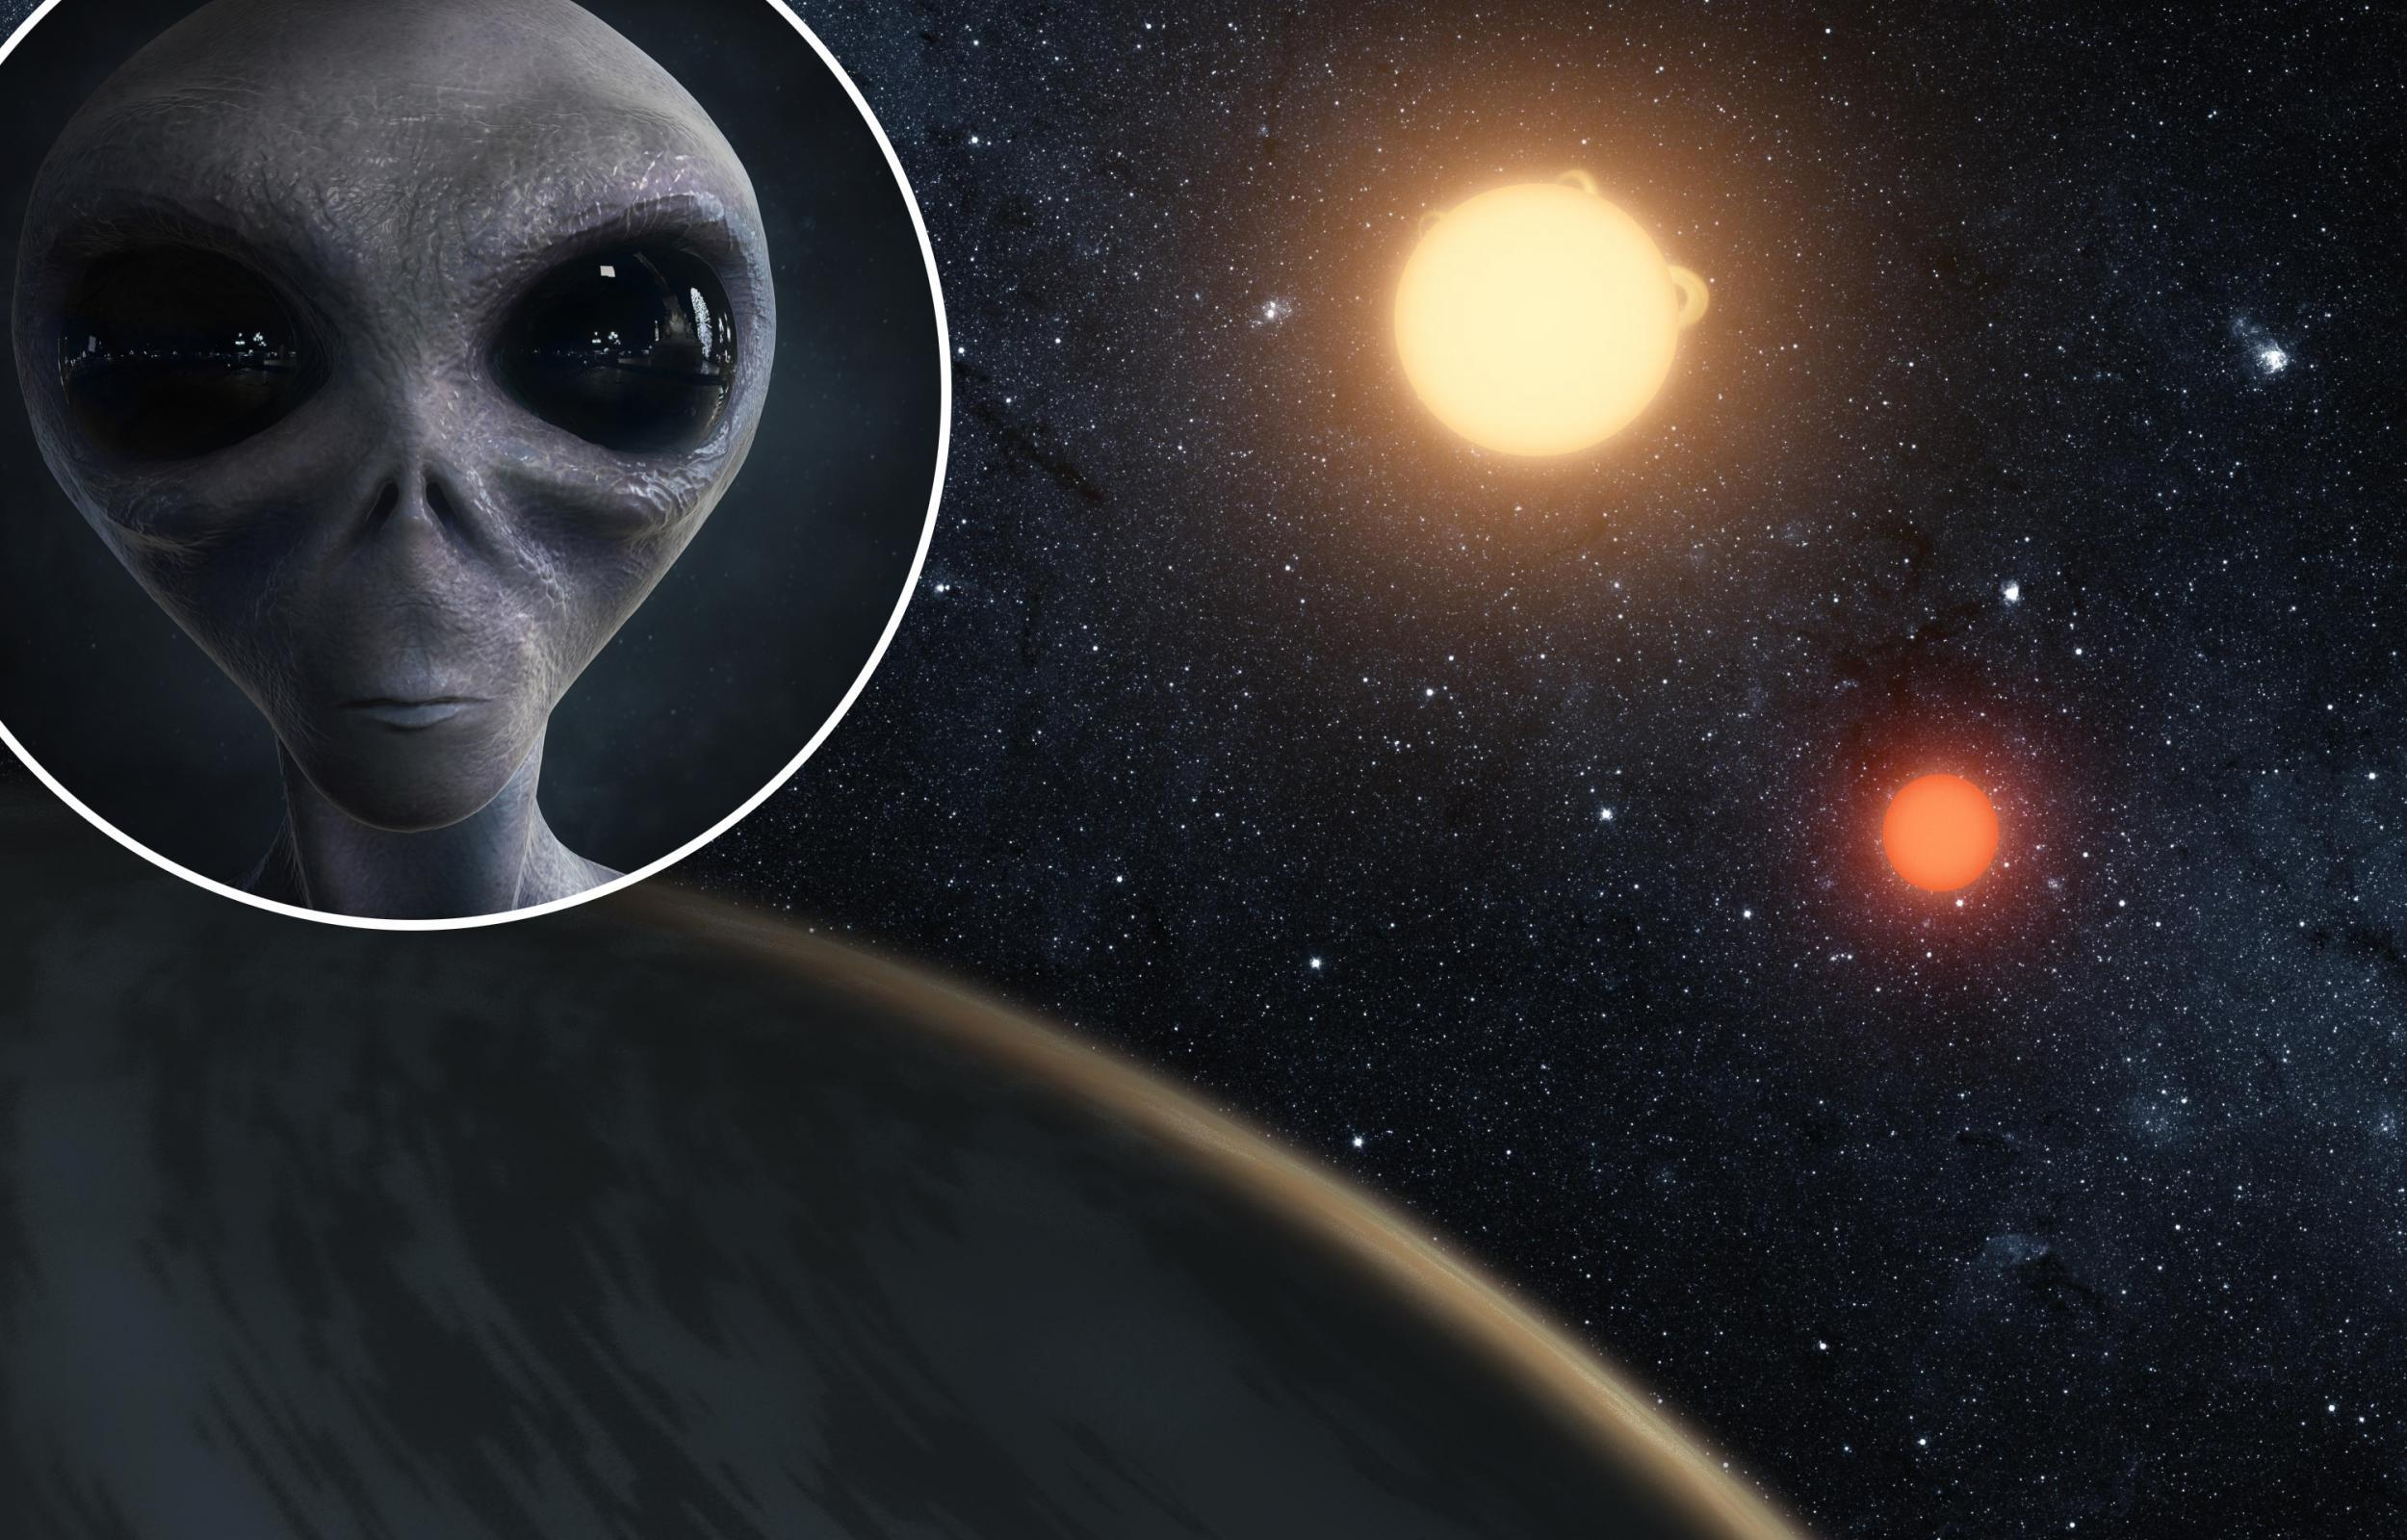 a study of evidence that suggests intelligent alien life Spacecom is where humanity's 'project ozma' begins search for alien life astronauts representing countries from around the world show you what life is like.